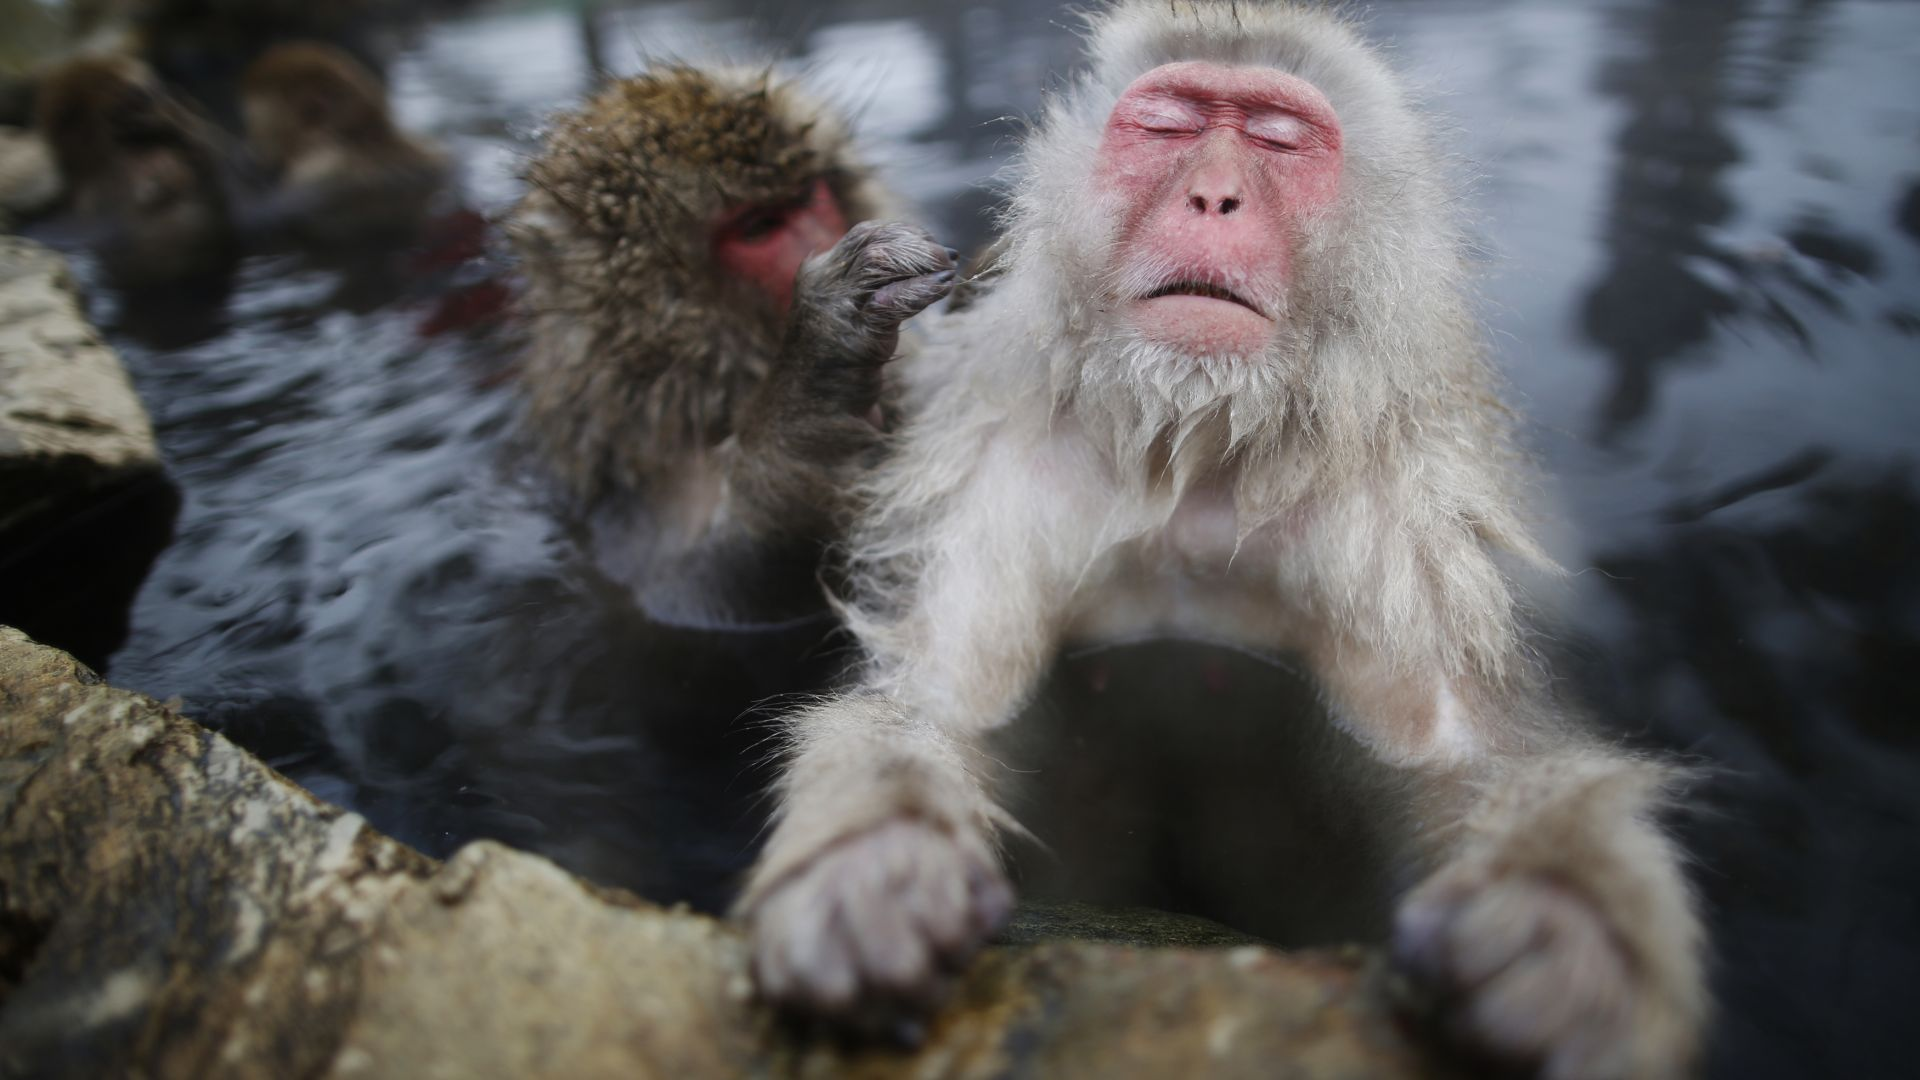 monkey, water, cute animals, funny (horizontal)